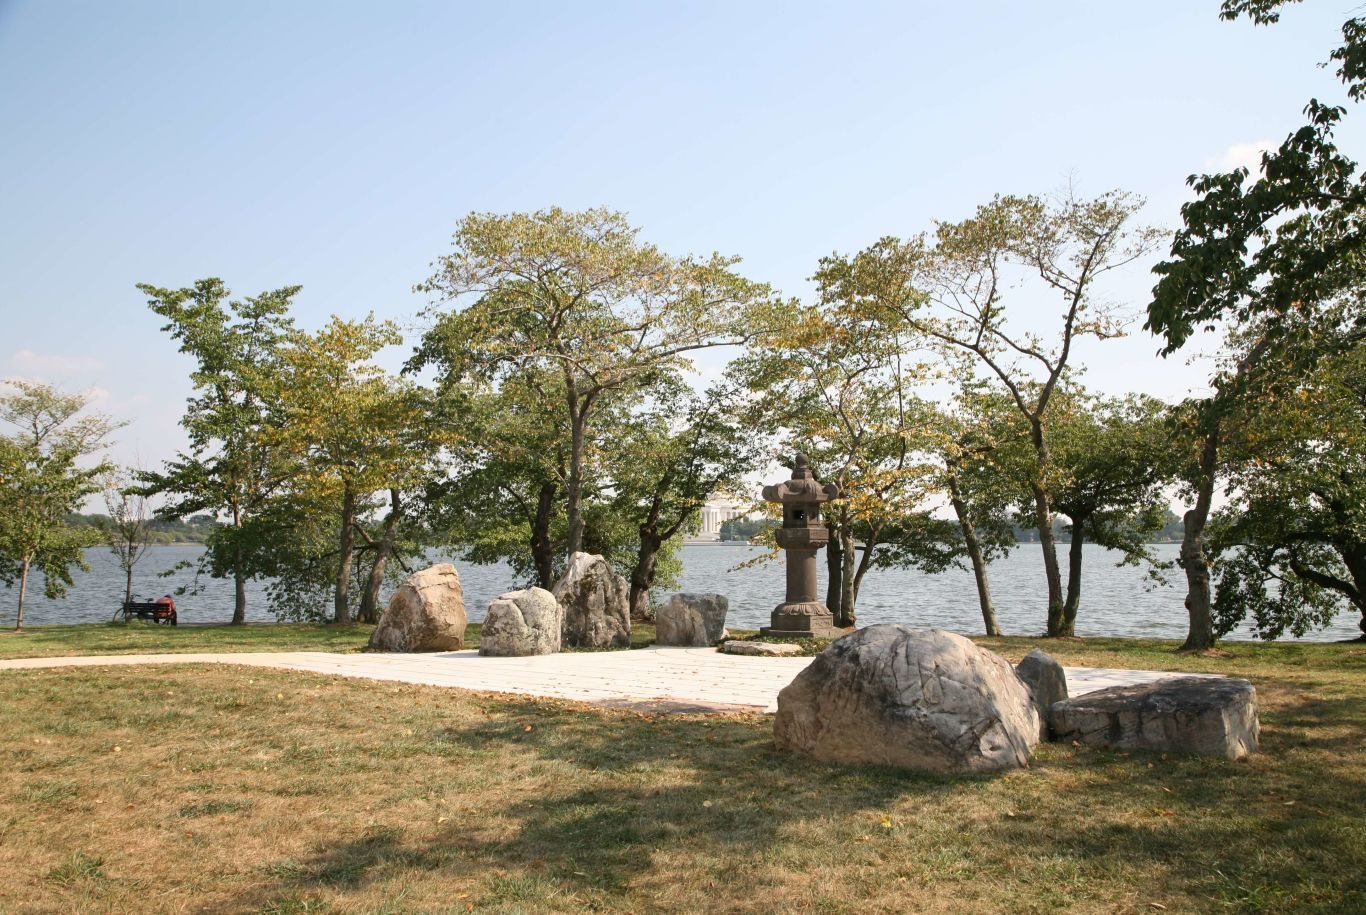 Japanese Lantern, Washington D.C. – trees, river, sculture